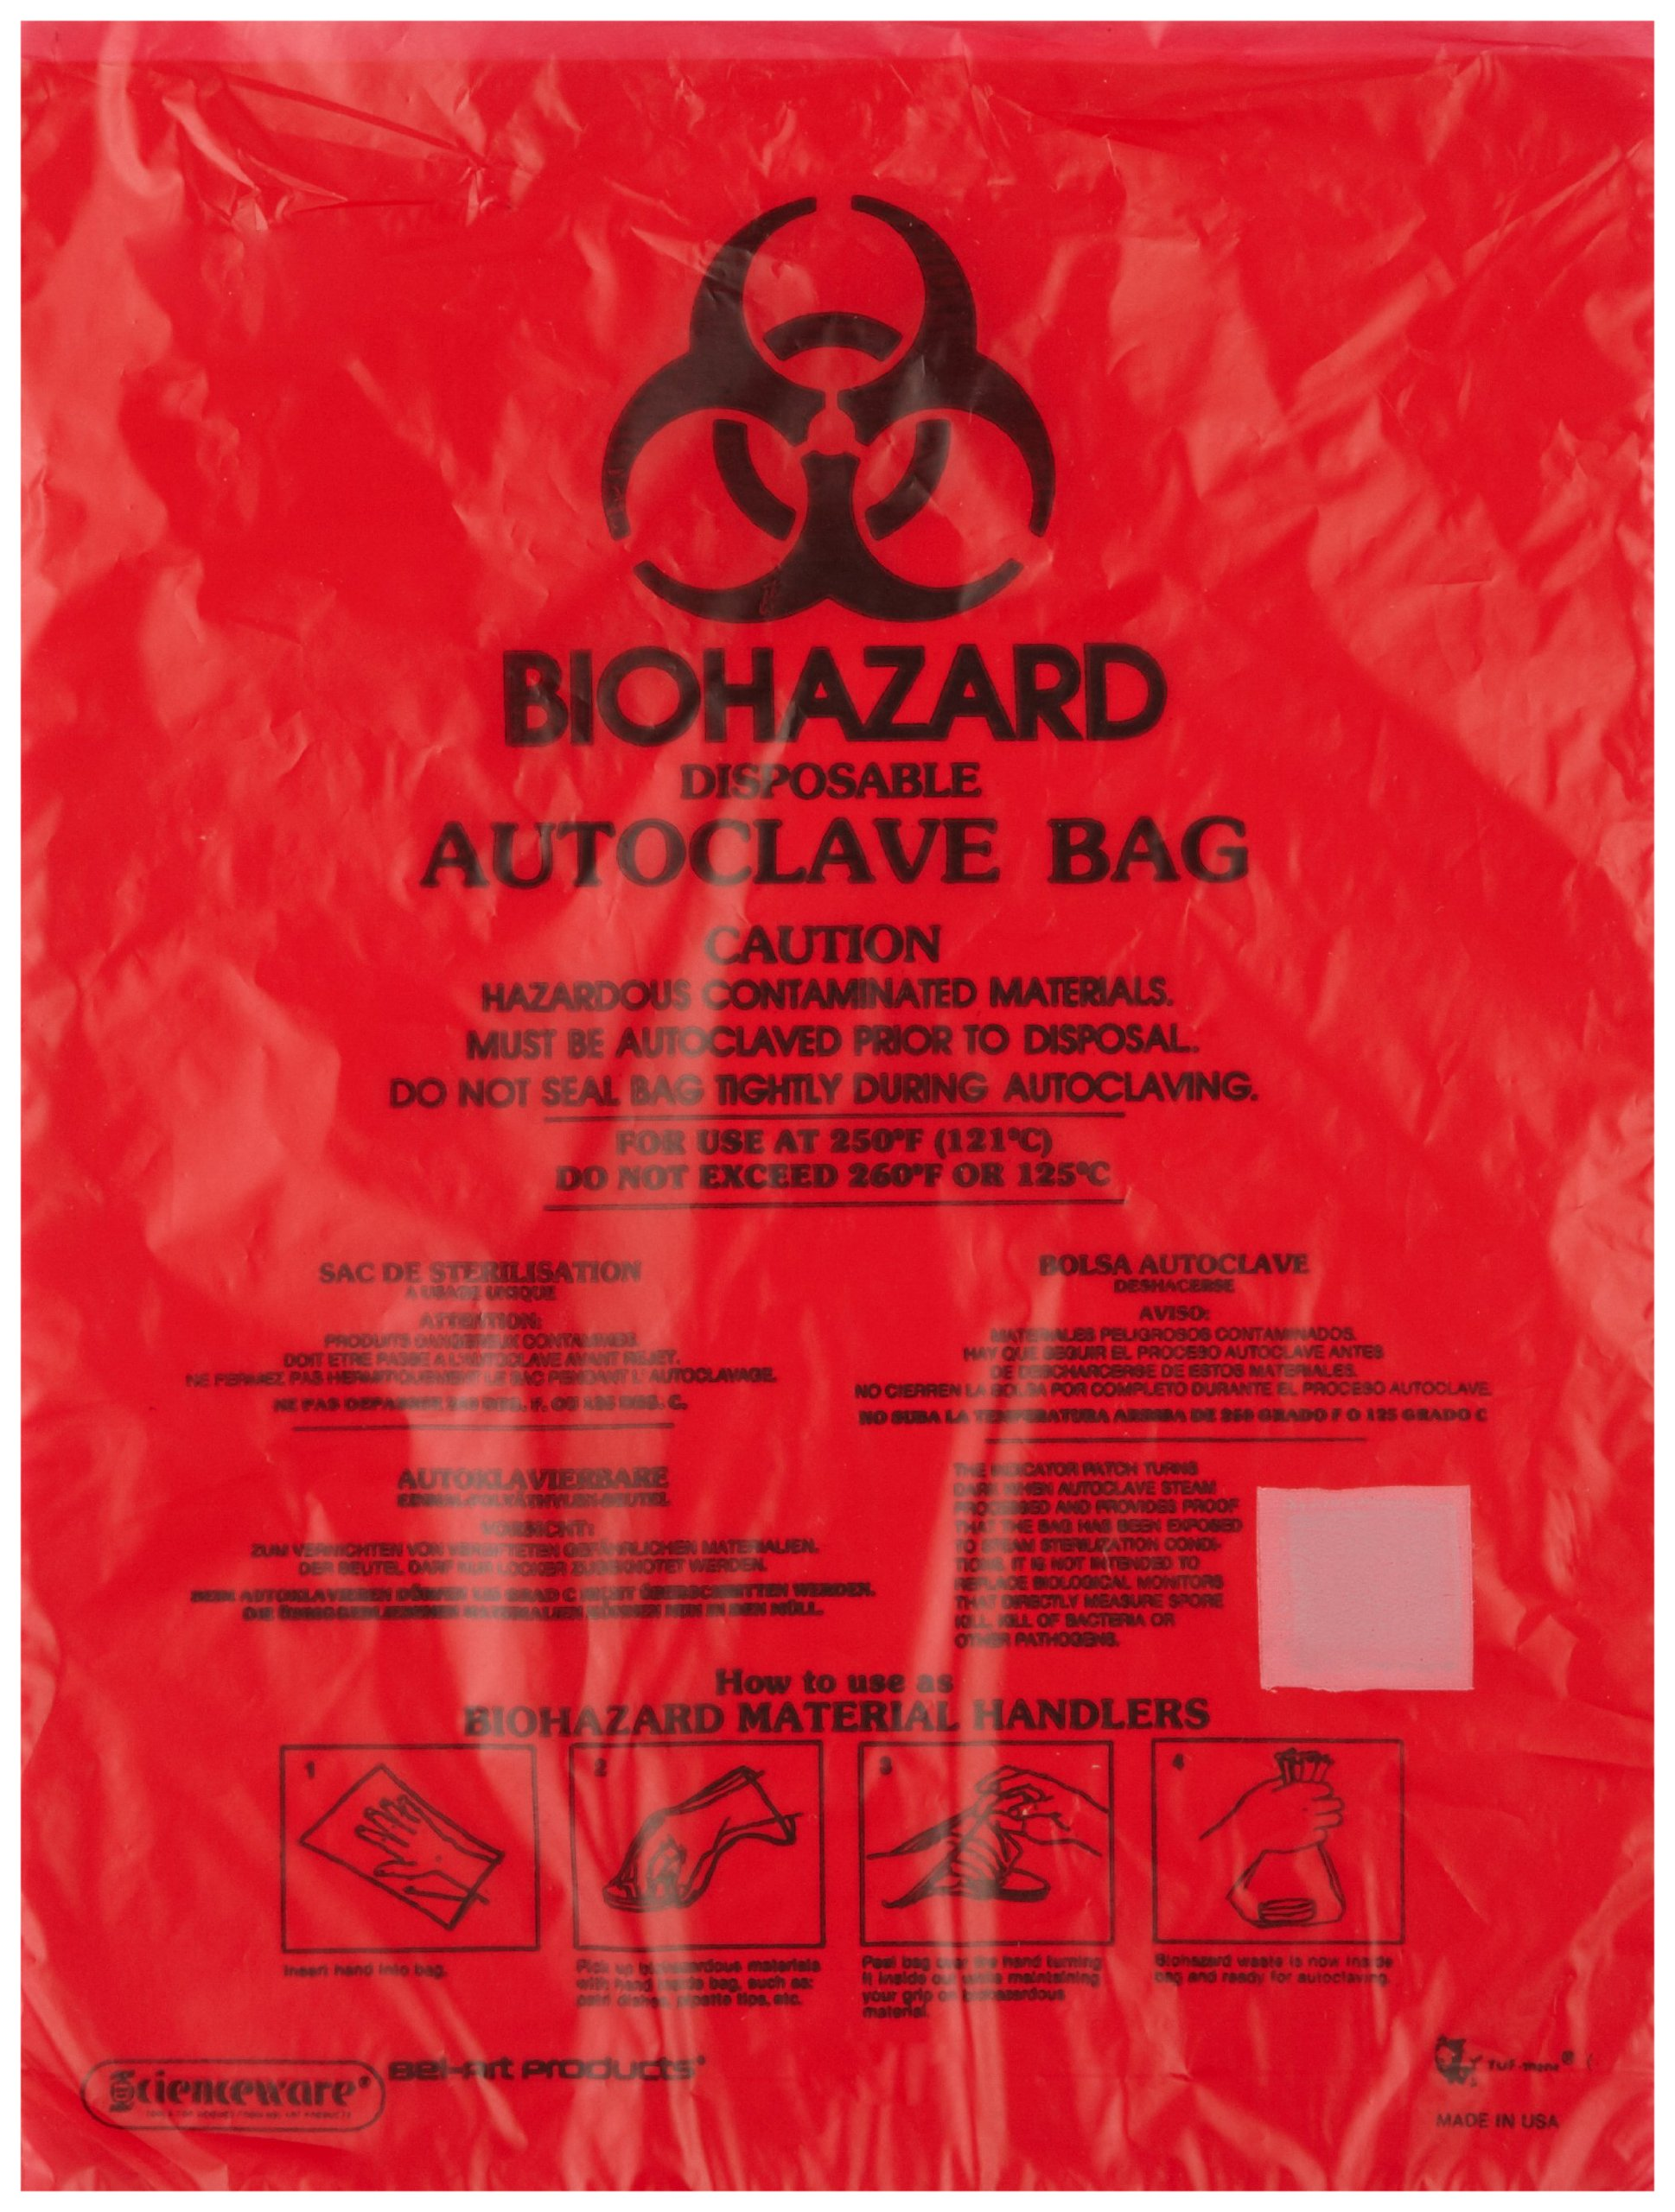 Bel-Art F13166-0001 Bench-Top Biohazard Bags; Red Polyethylene, 0.43 Gallon, 8.5W x 11 in. H, 0.018mm Thick (Pack of 1000)